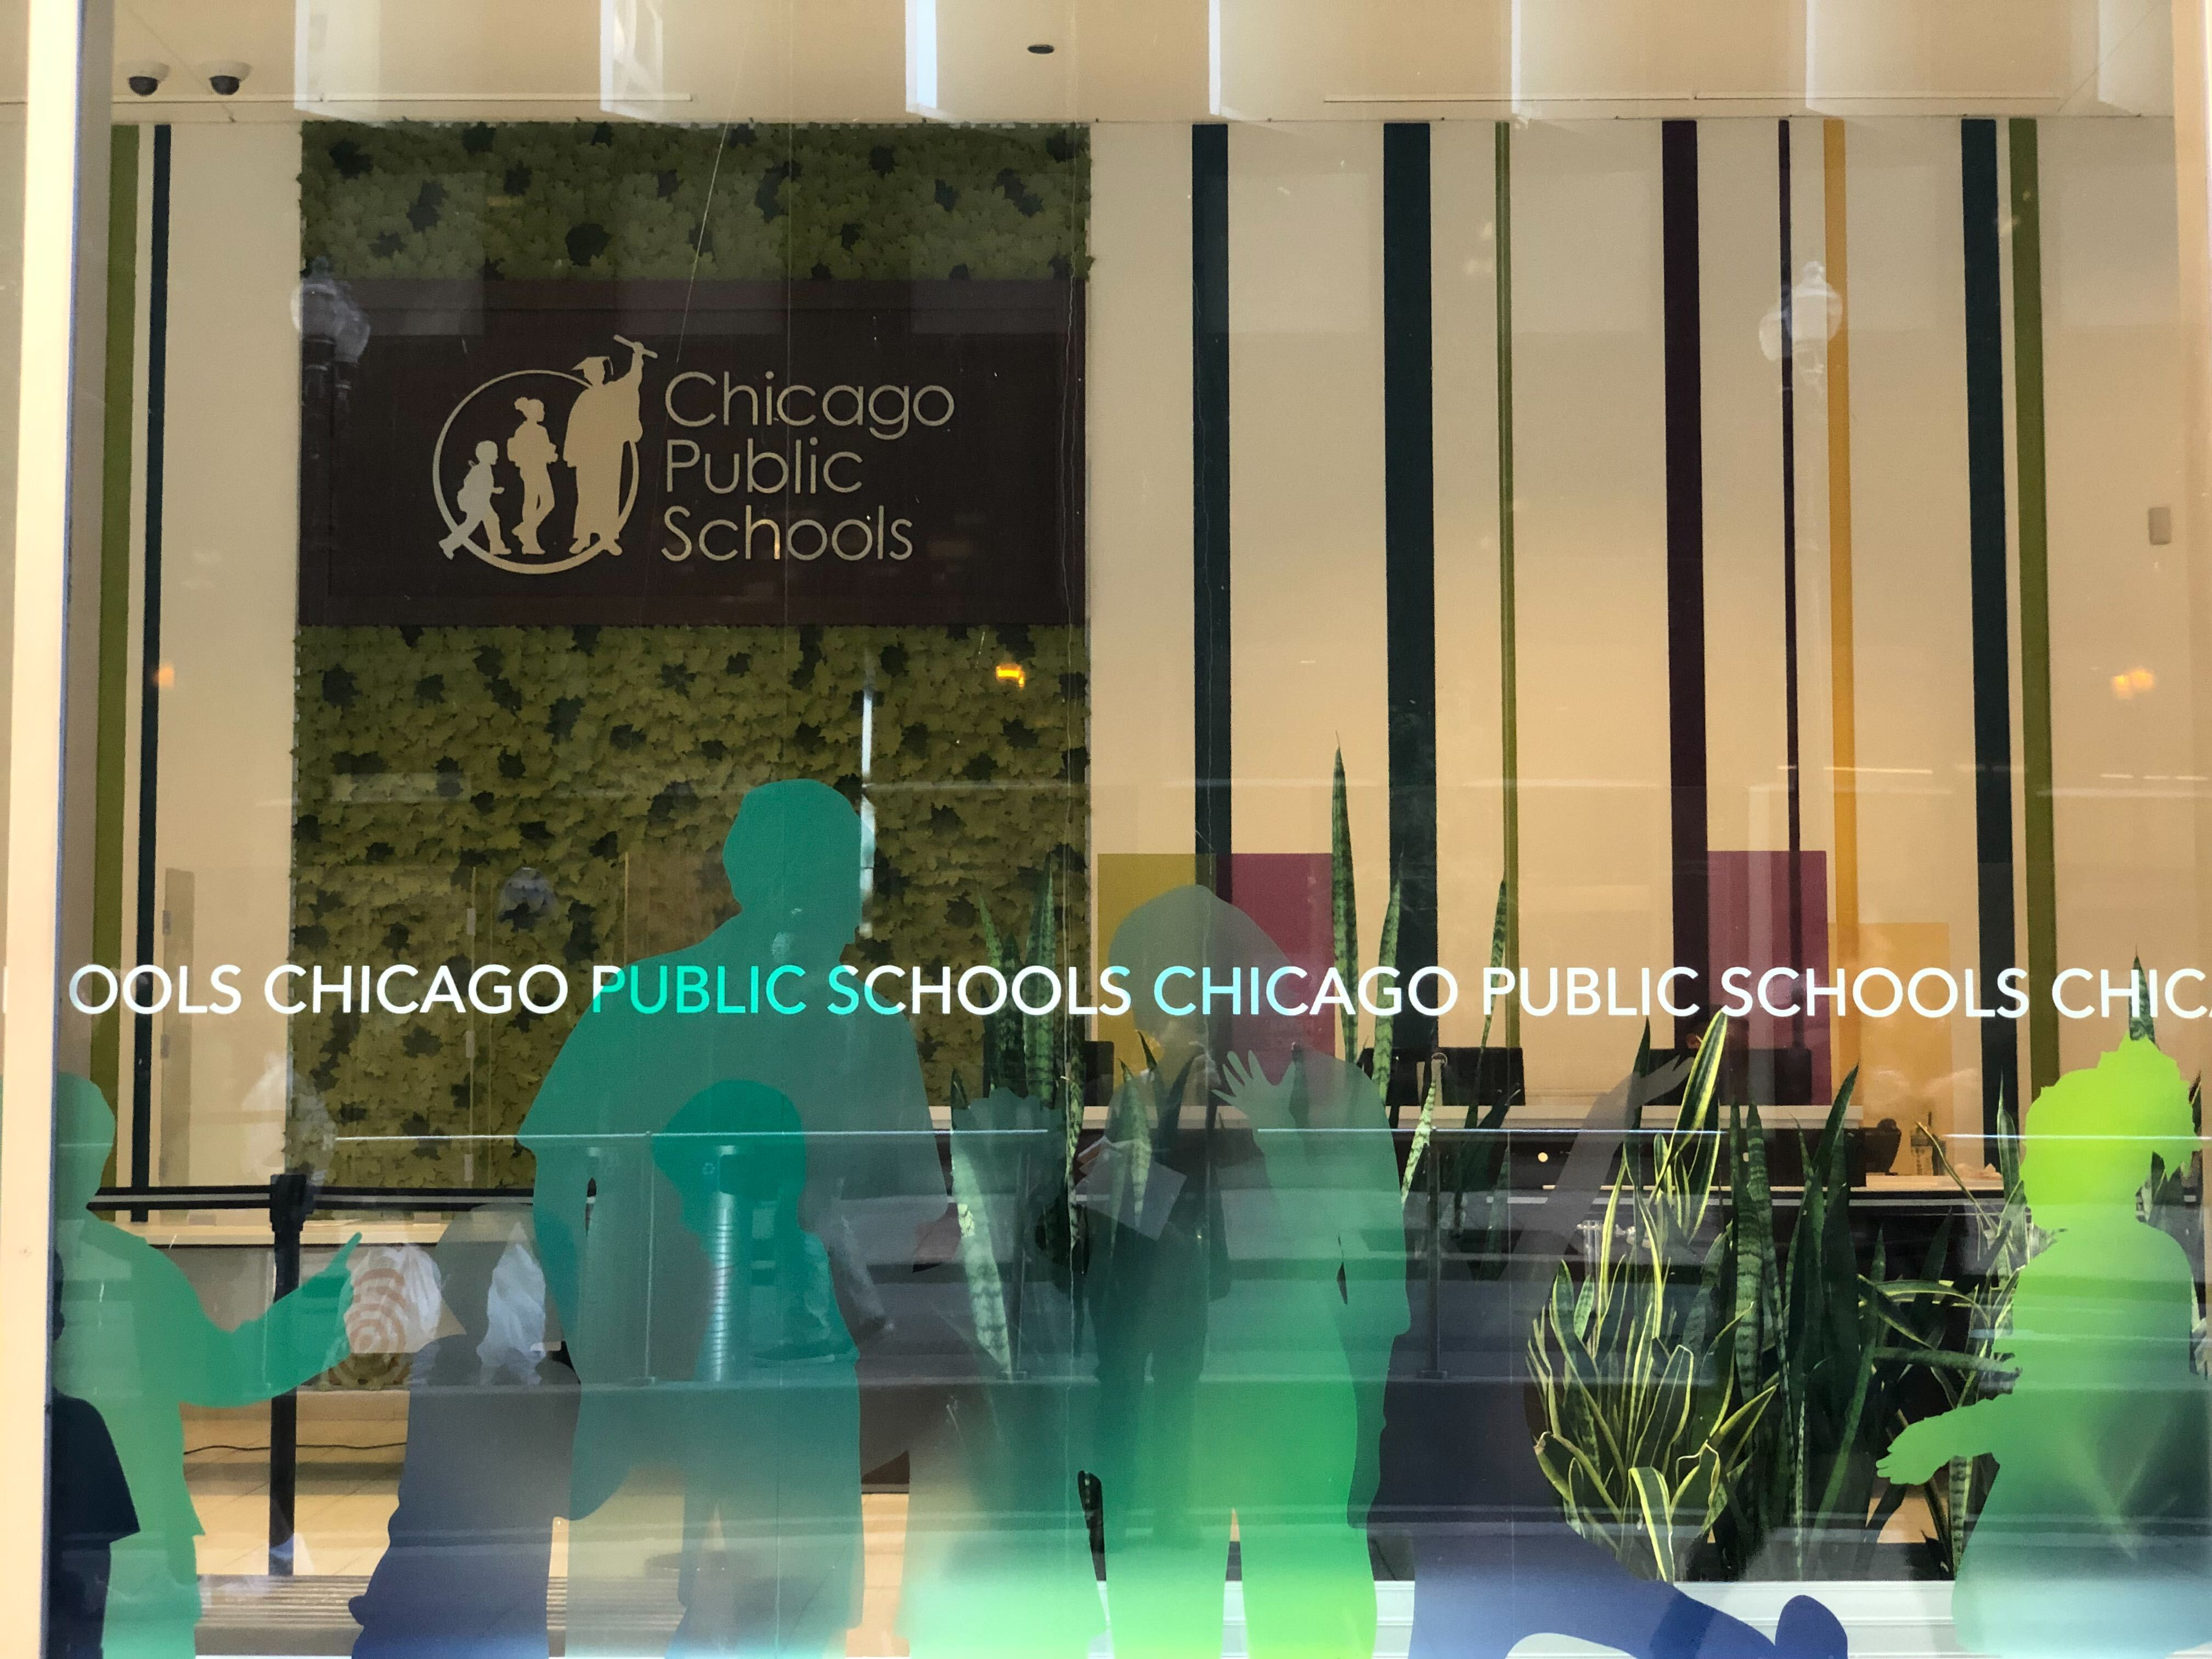 The facade of Chicago Public Schools headquarters, with the district's sign hanging on the wall behind windows with green silhouettes of students.